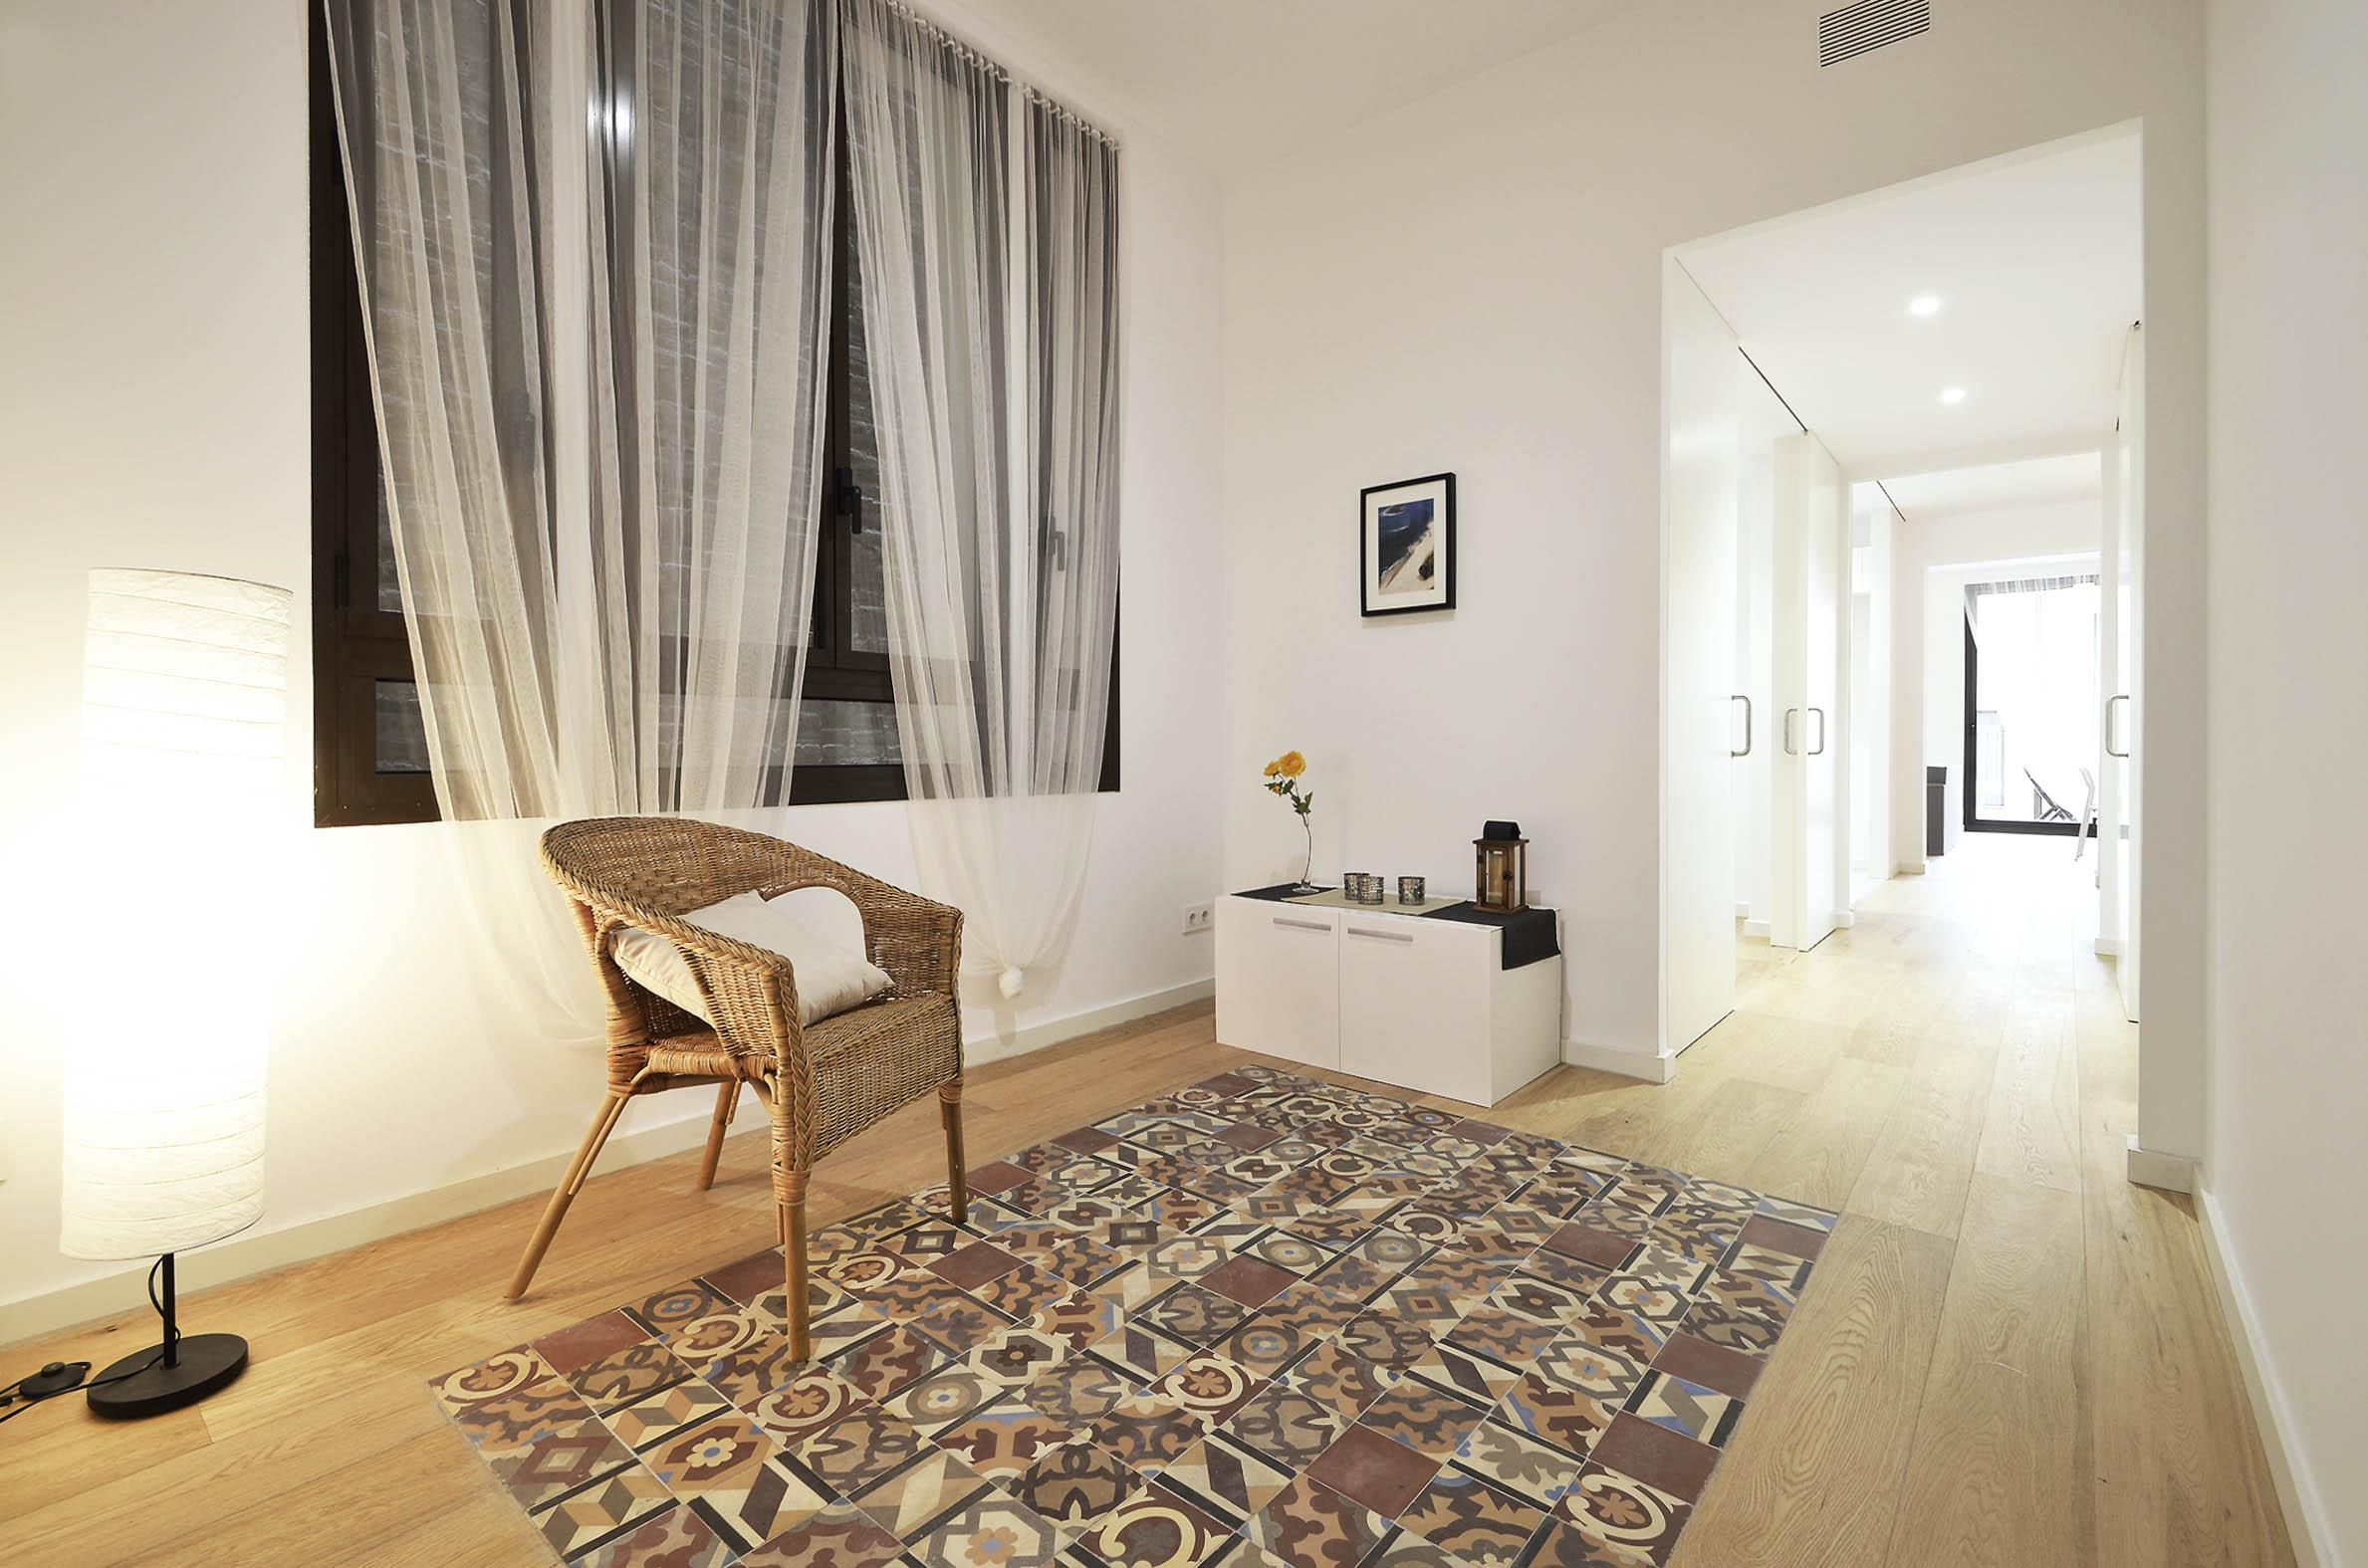 173872 Apartment for sale in Eixample, Old Left Eixample 10